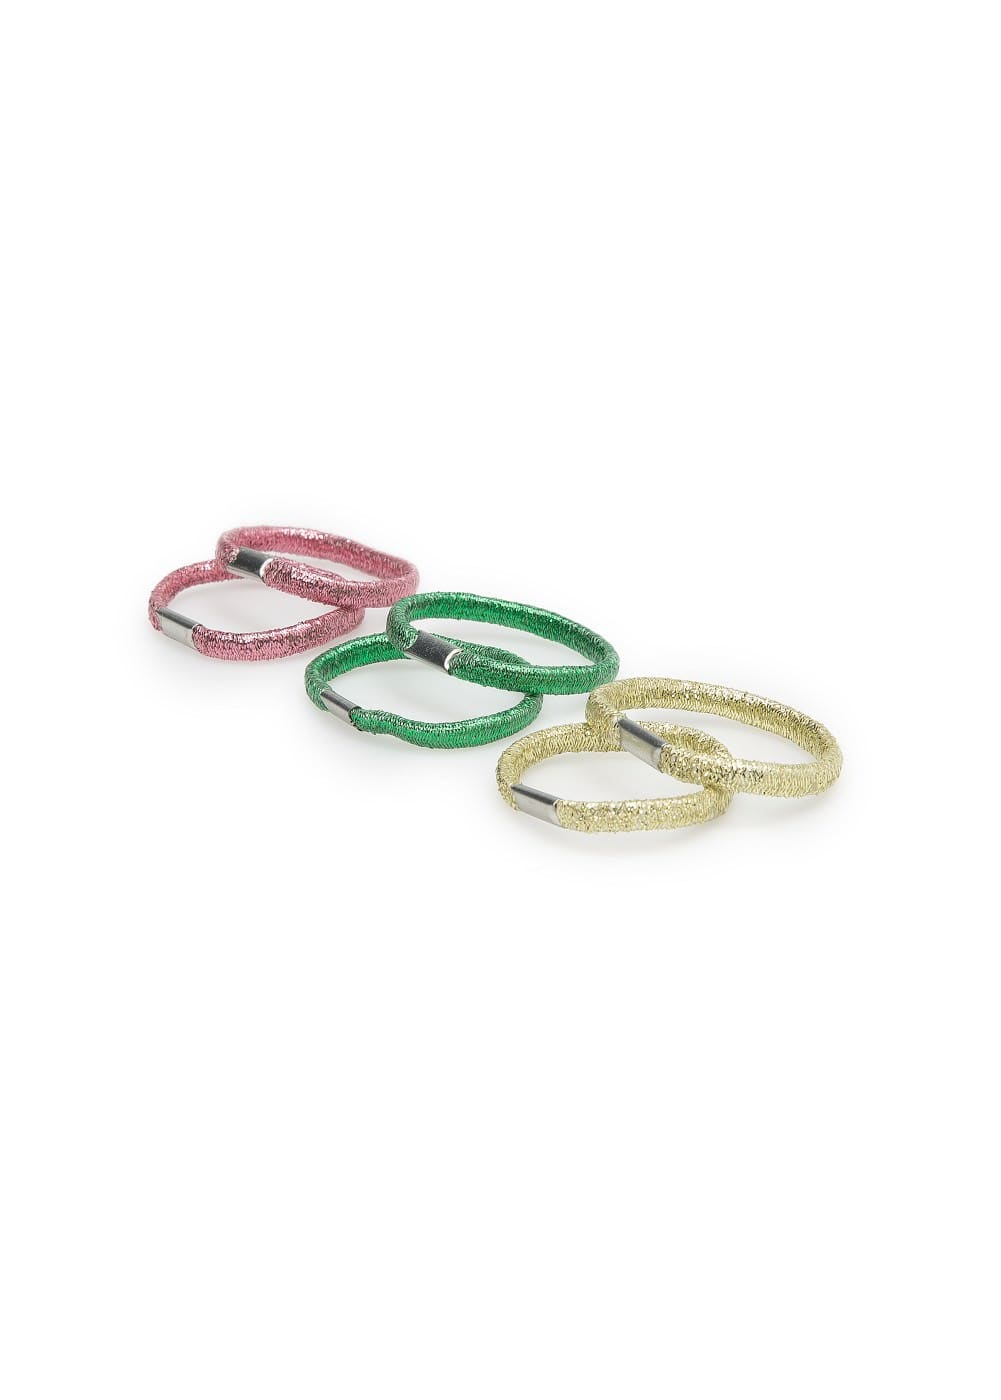 Metallic hair tie pack